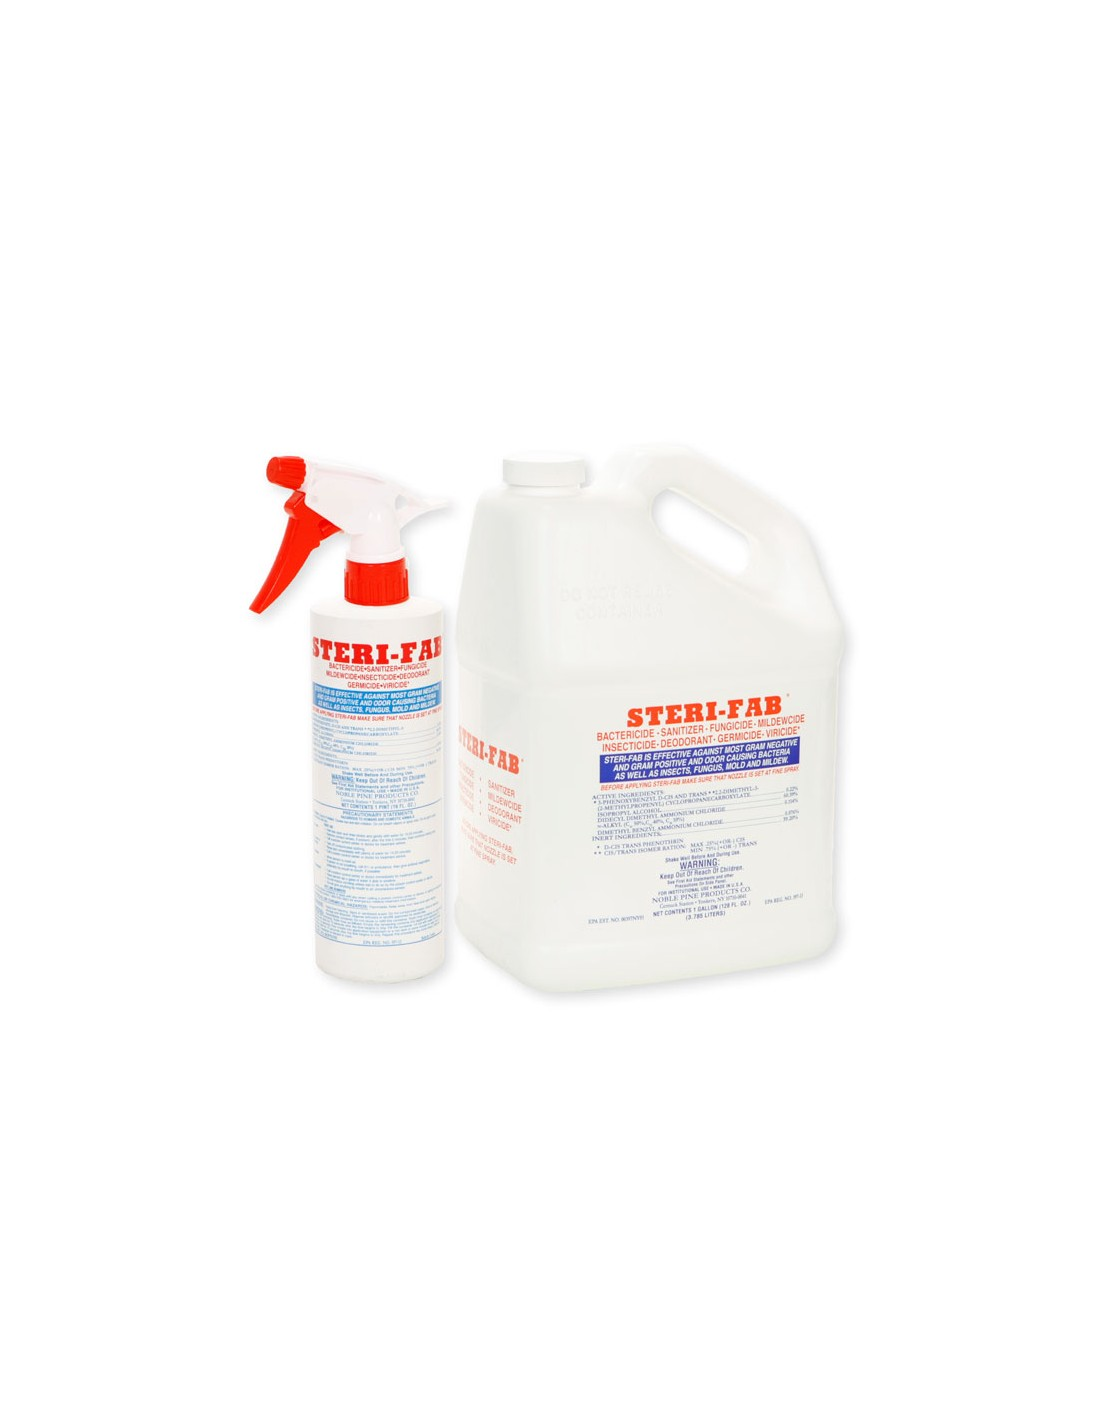 Does this work for carpet beetles?